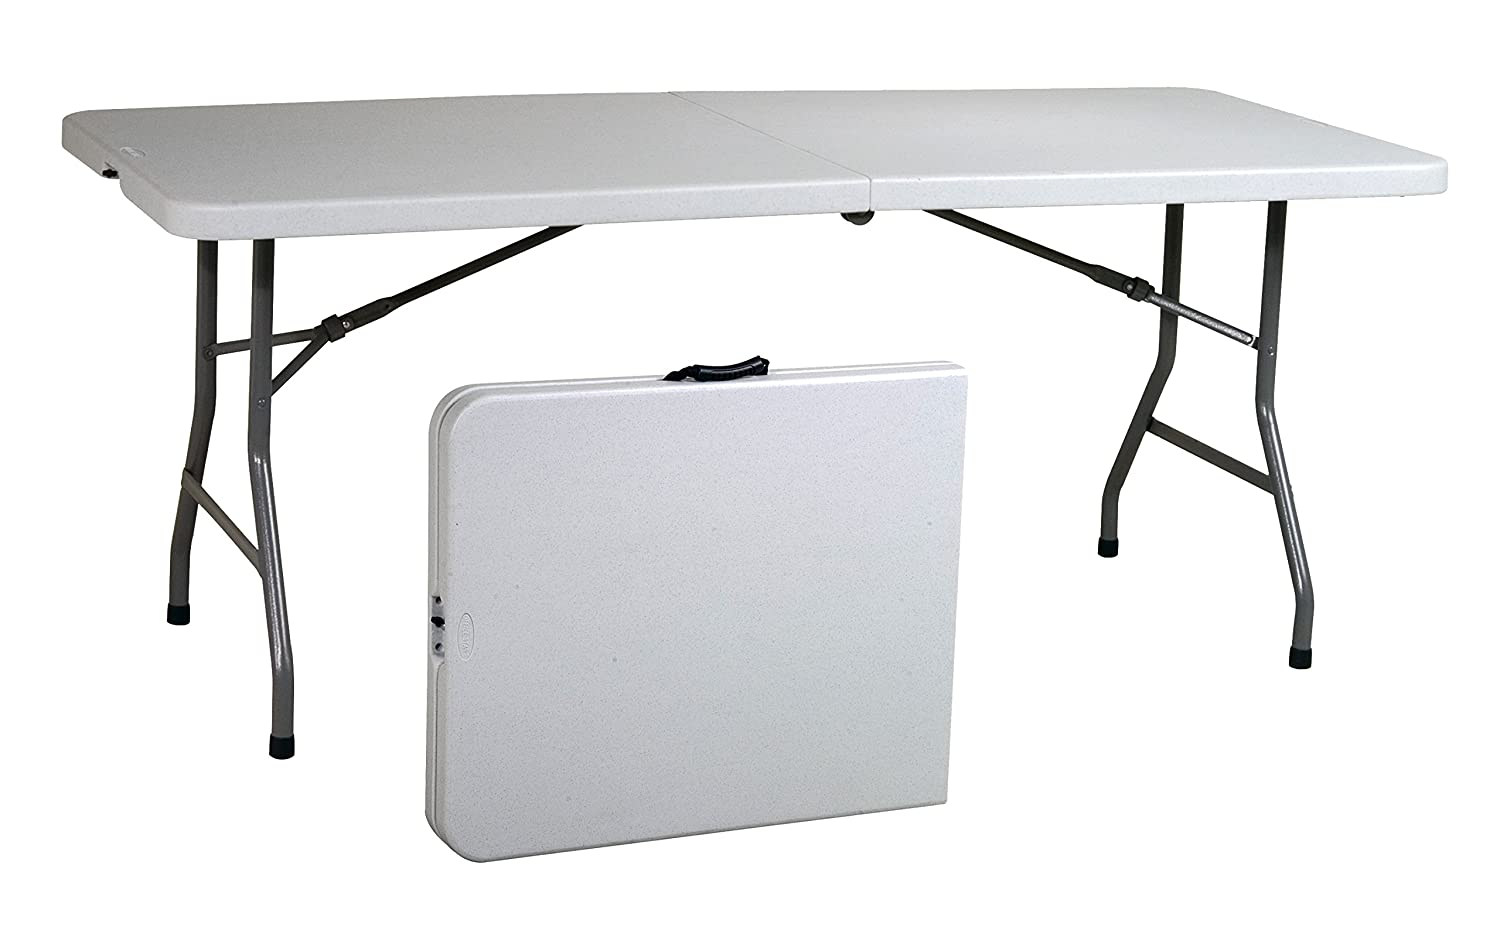 Office Star Resin Multipurpose Rectangle Table, 6-Feet, Center Folding